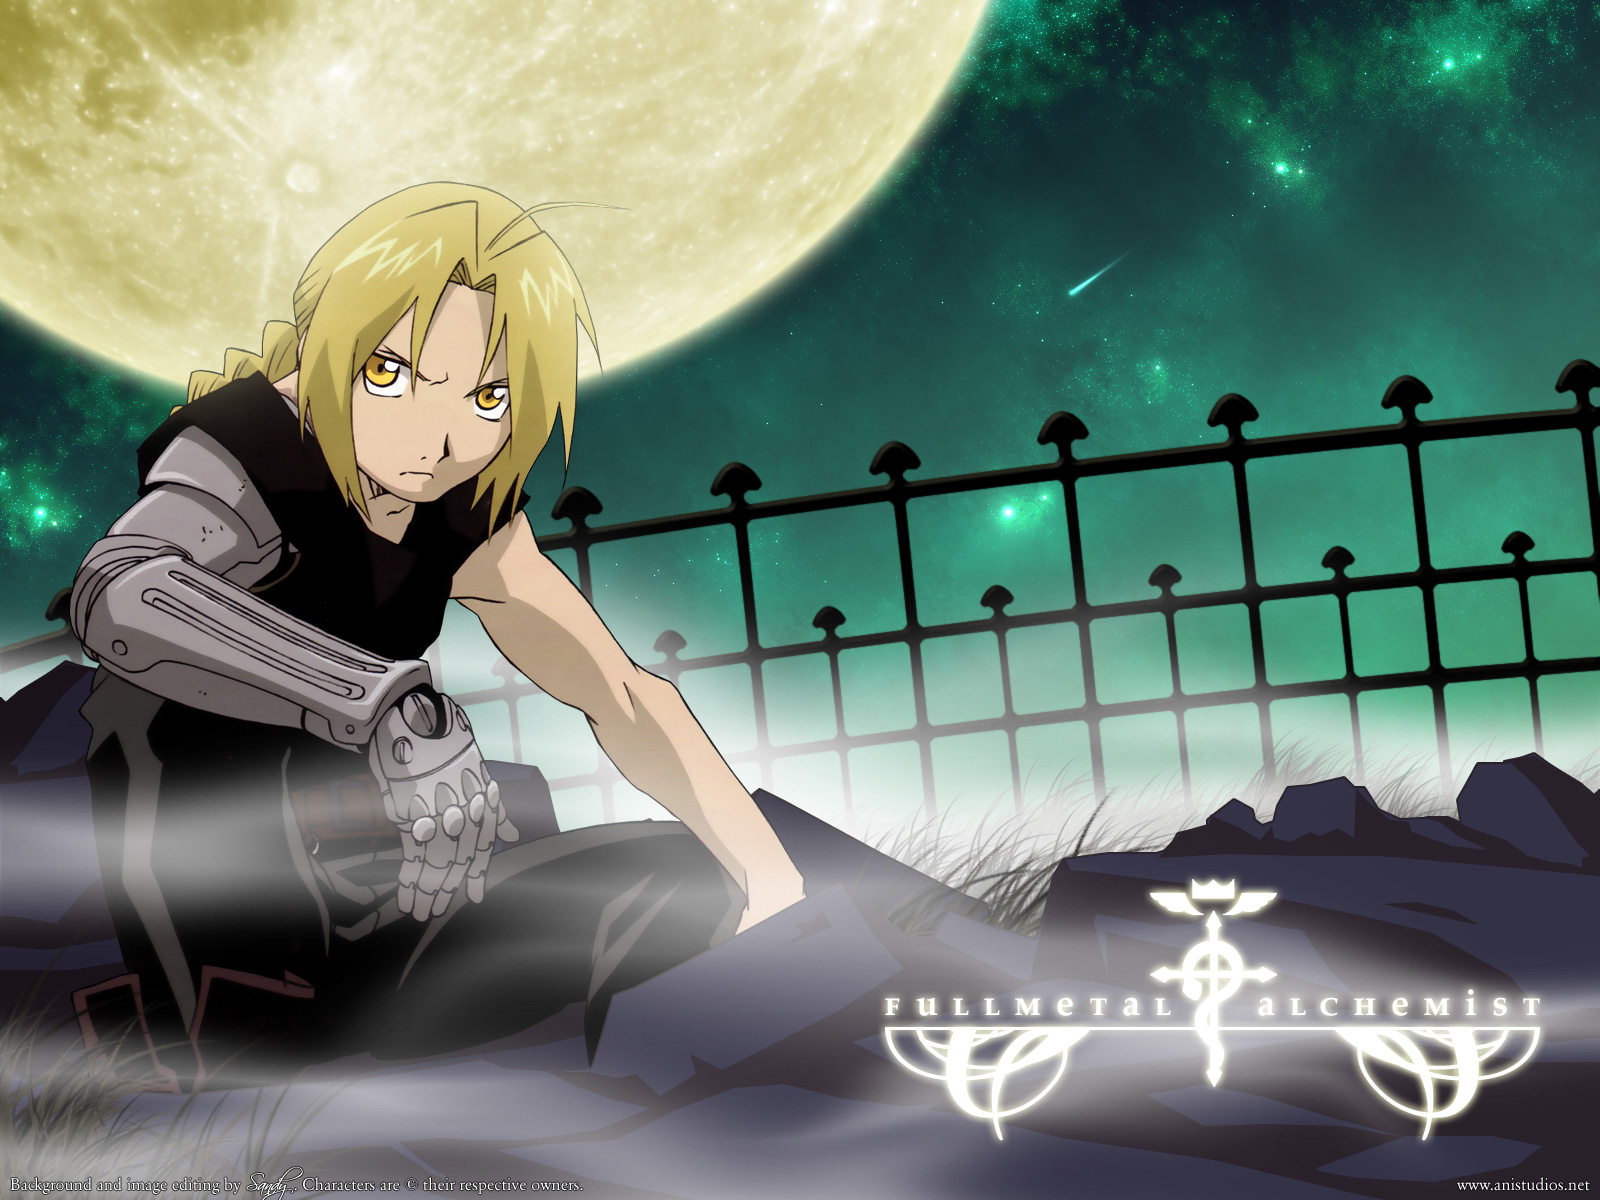 of zefiemediaImagesWallpaperFullmetal Alchemist   Persona Files 1600x1200